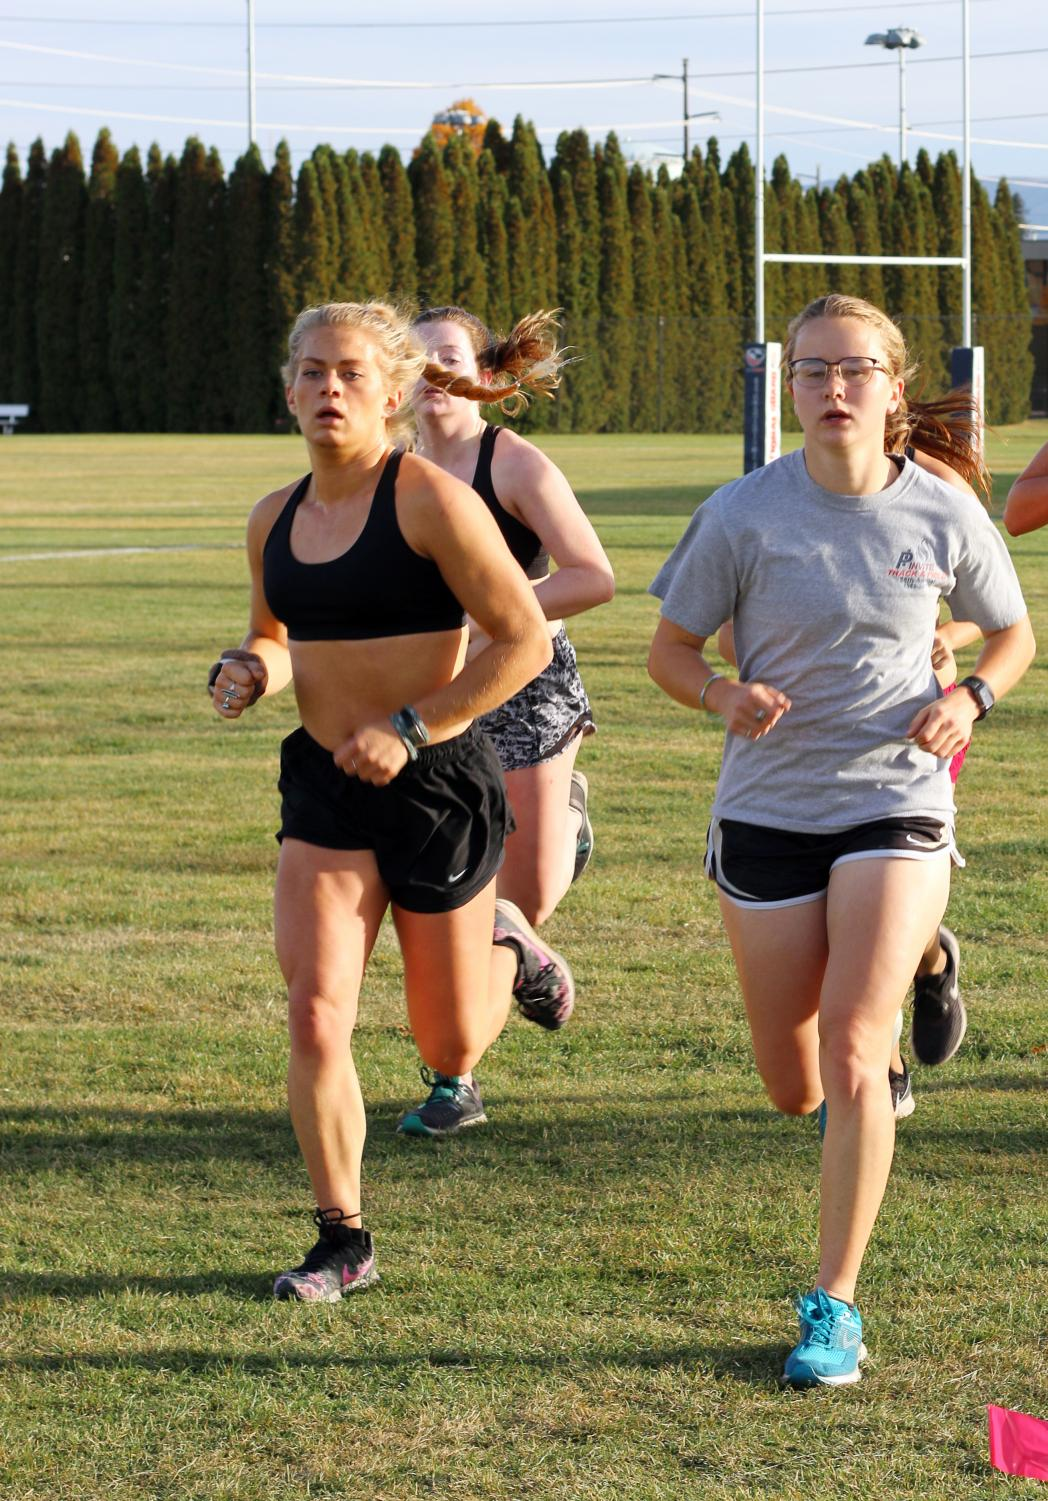 The men and women get strong workouts in ahead of the GNAC Championships on Nov. 3. The meet will be a test for the Wildcats as they will get to match up against the rest of the conference.